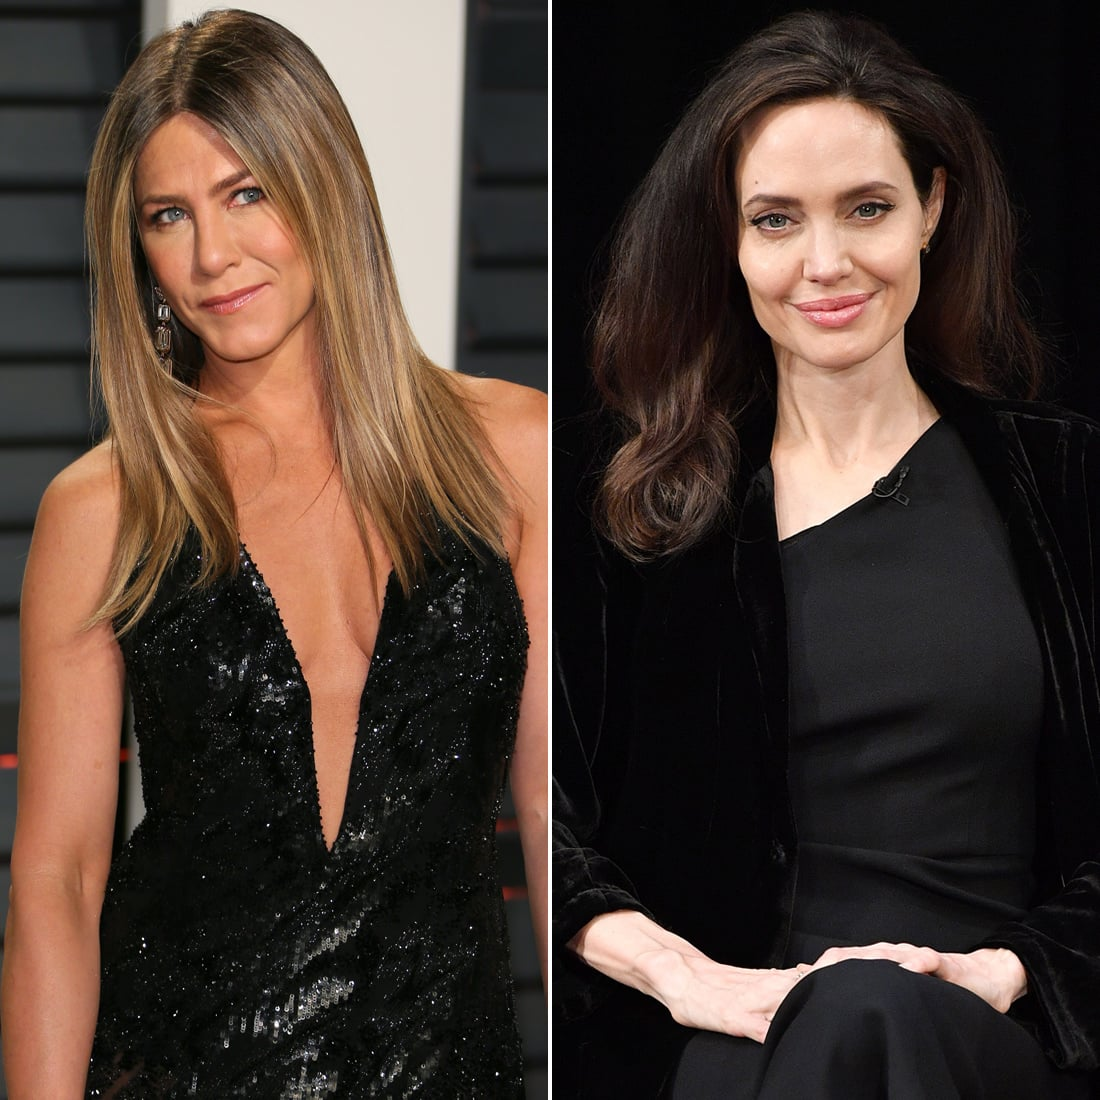 Jolie and Aniston will meet for the first time in a long time at one event